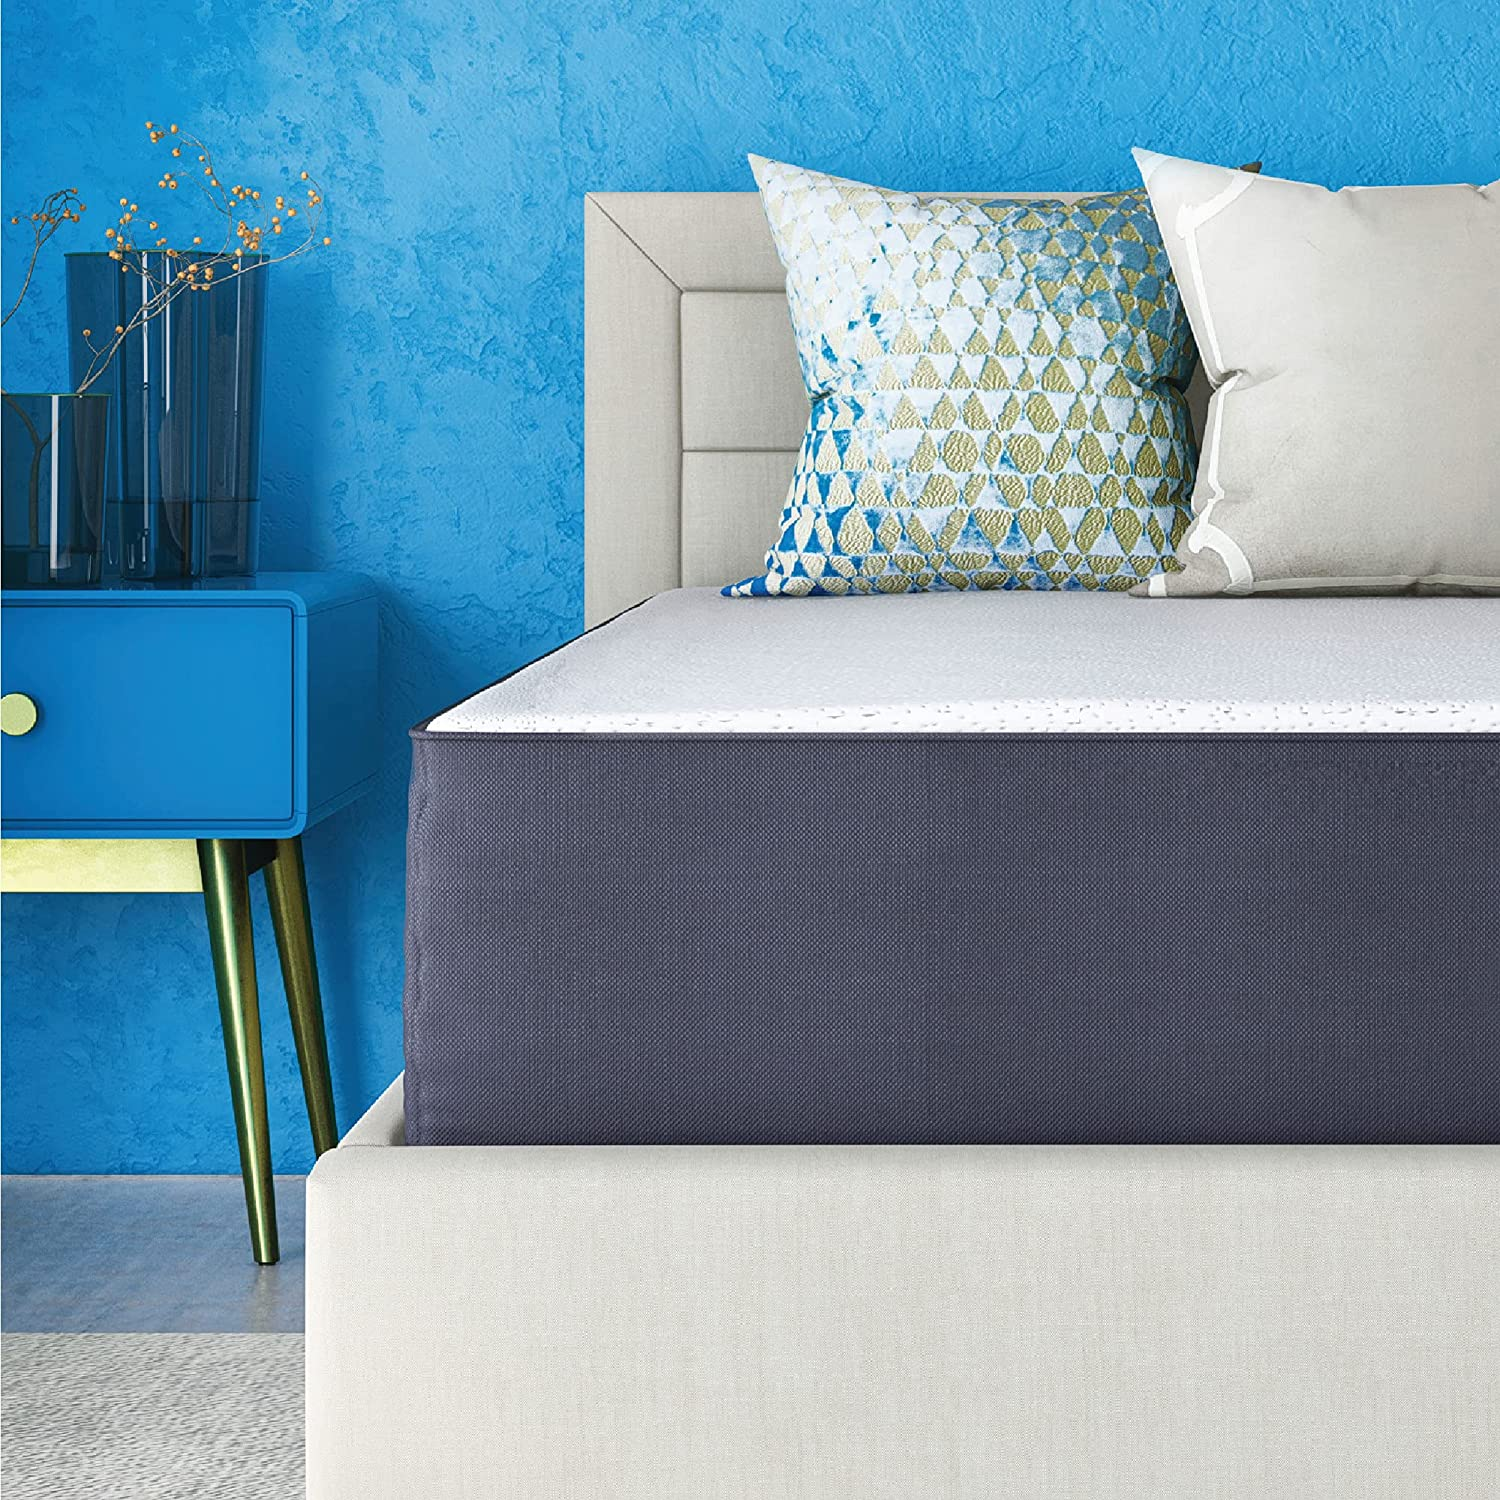 Classic Brands Cool Gel Ventilated Mattress 10-Inch Foam Spasm price Memory Popular products